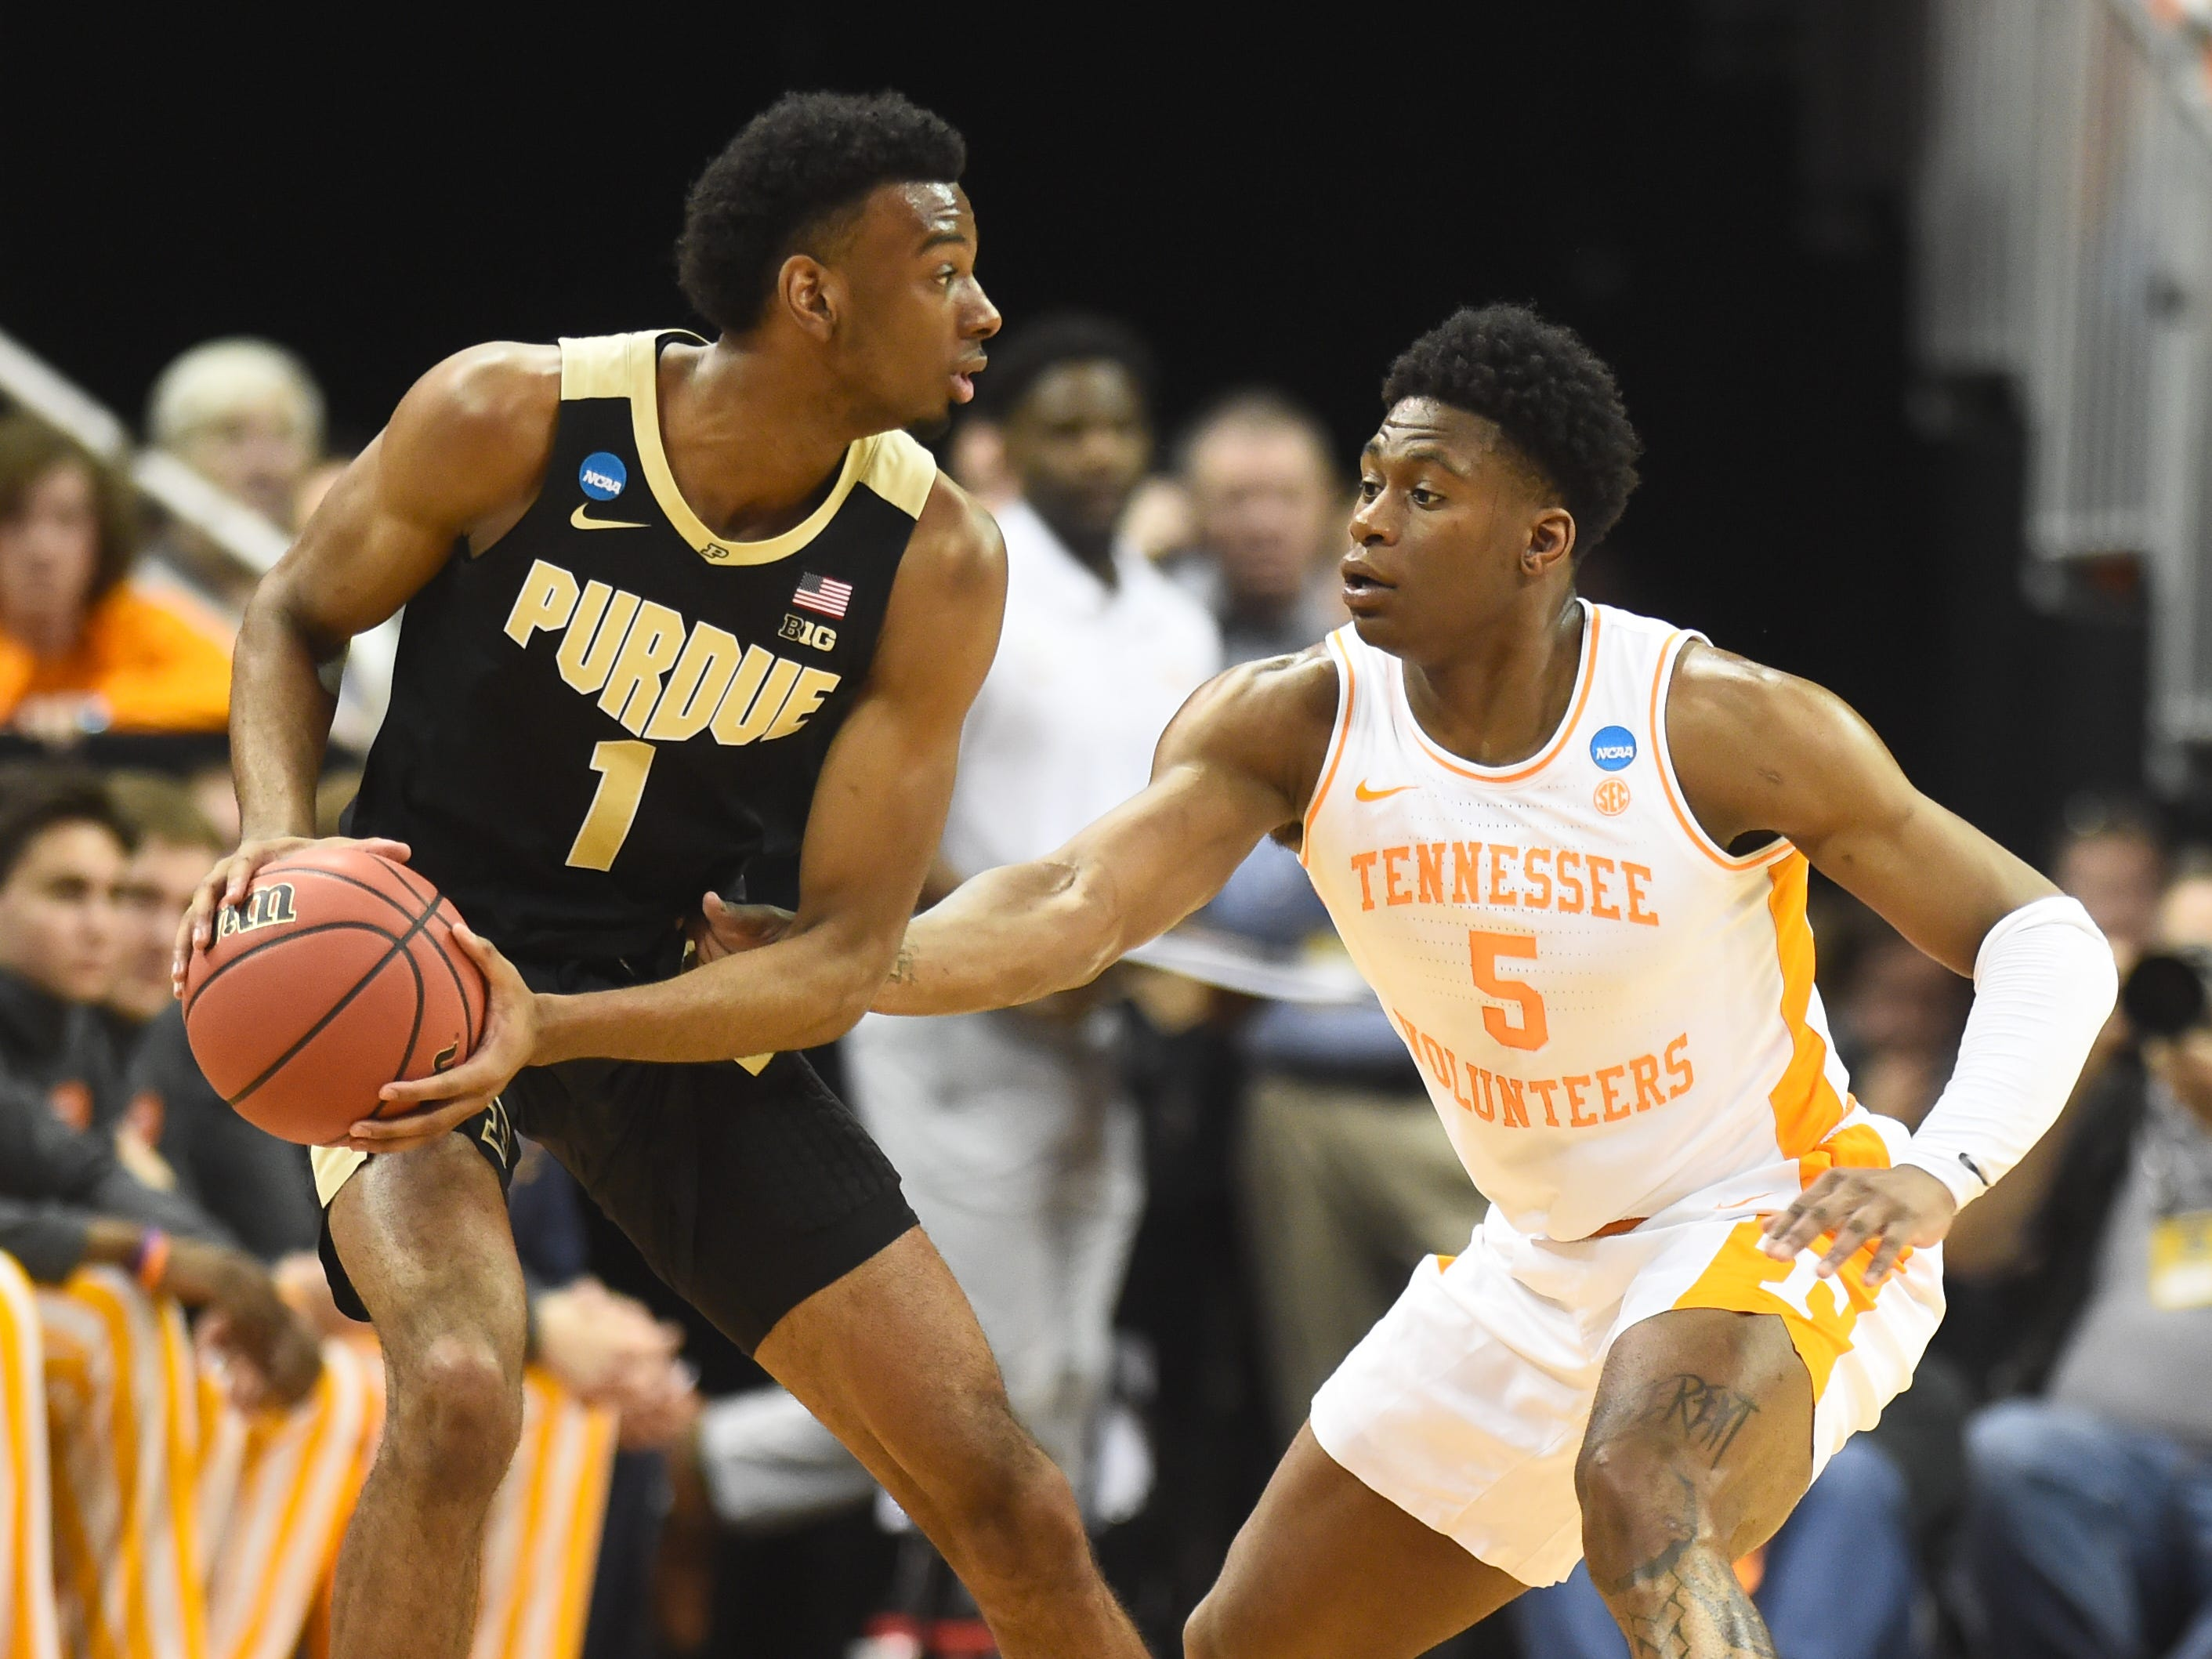 Tennessee guard Admiral Schofield (5) defends as Purdue forward Aaron Wheeler (1) tries to move the ball during the first half of the Sweet 16 game in the NCAA Tournament Thursday, March 28, 2019, at the KFC Yum! Center in Louisville, Ky.